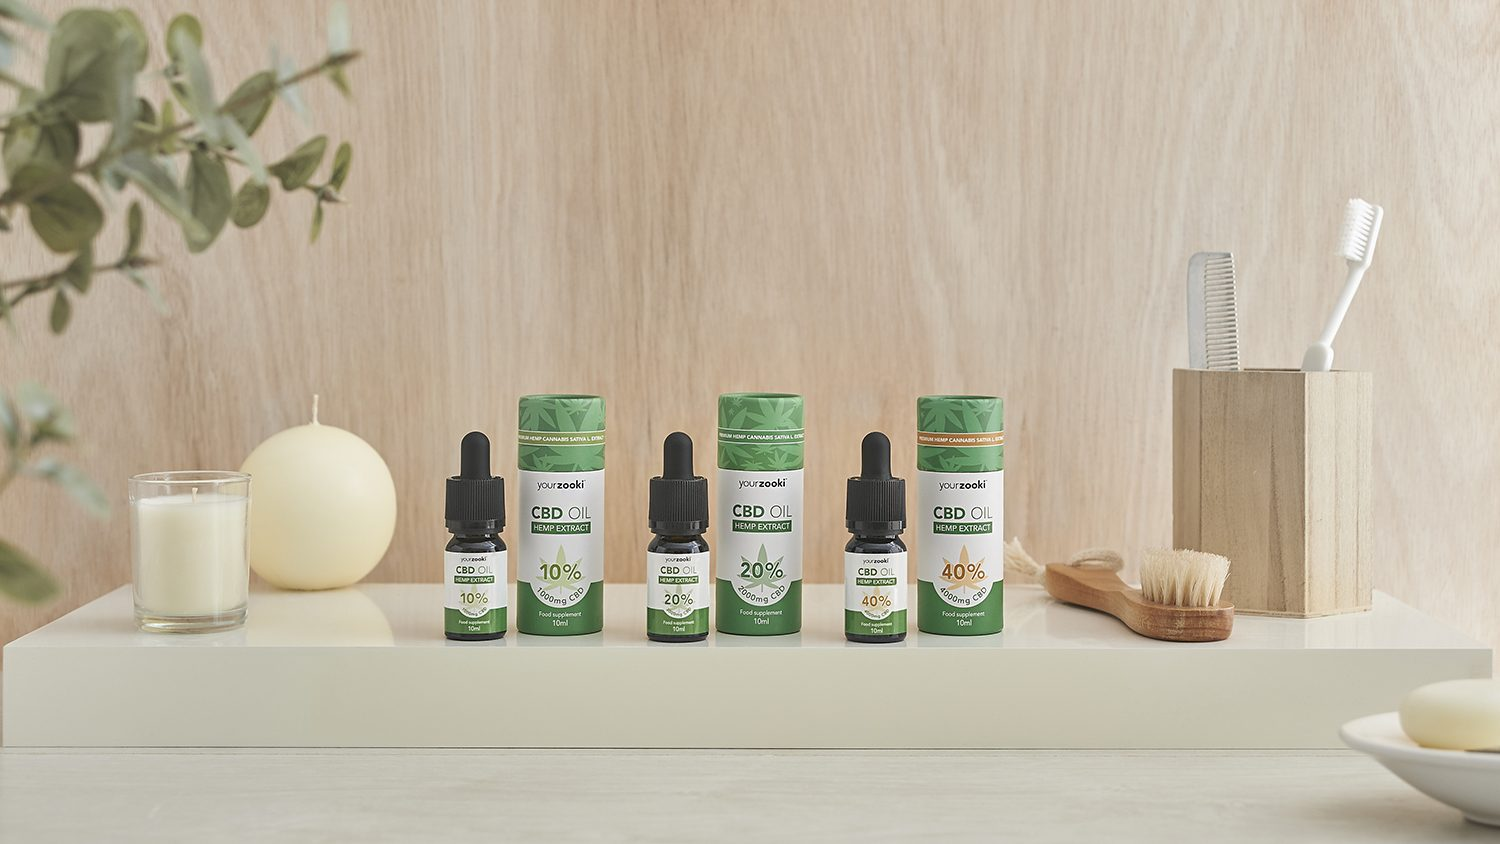 A photograph of the full range of CBD oil products from Your Zooki in a Lifestyle Setting